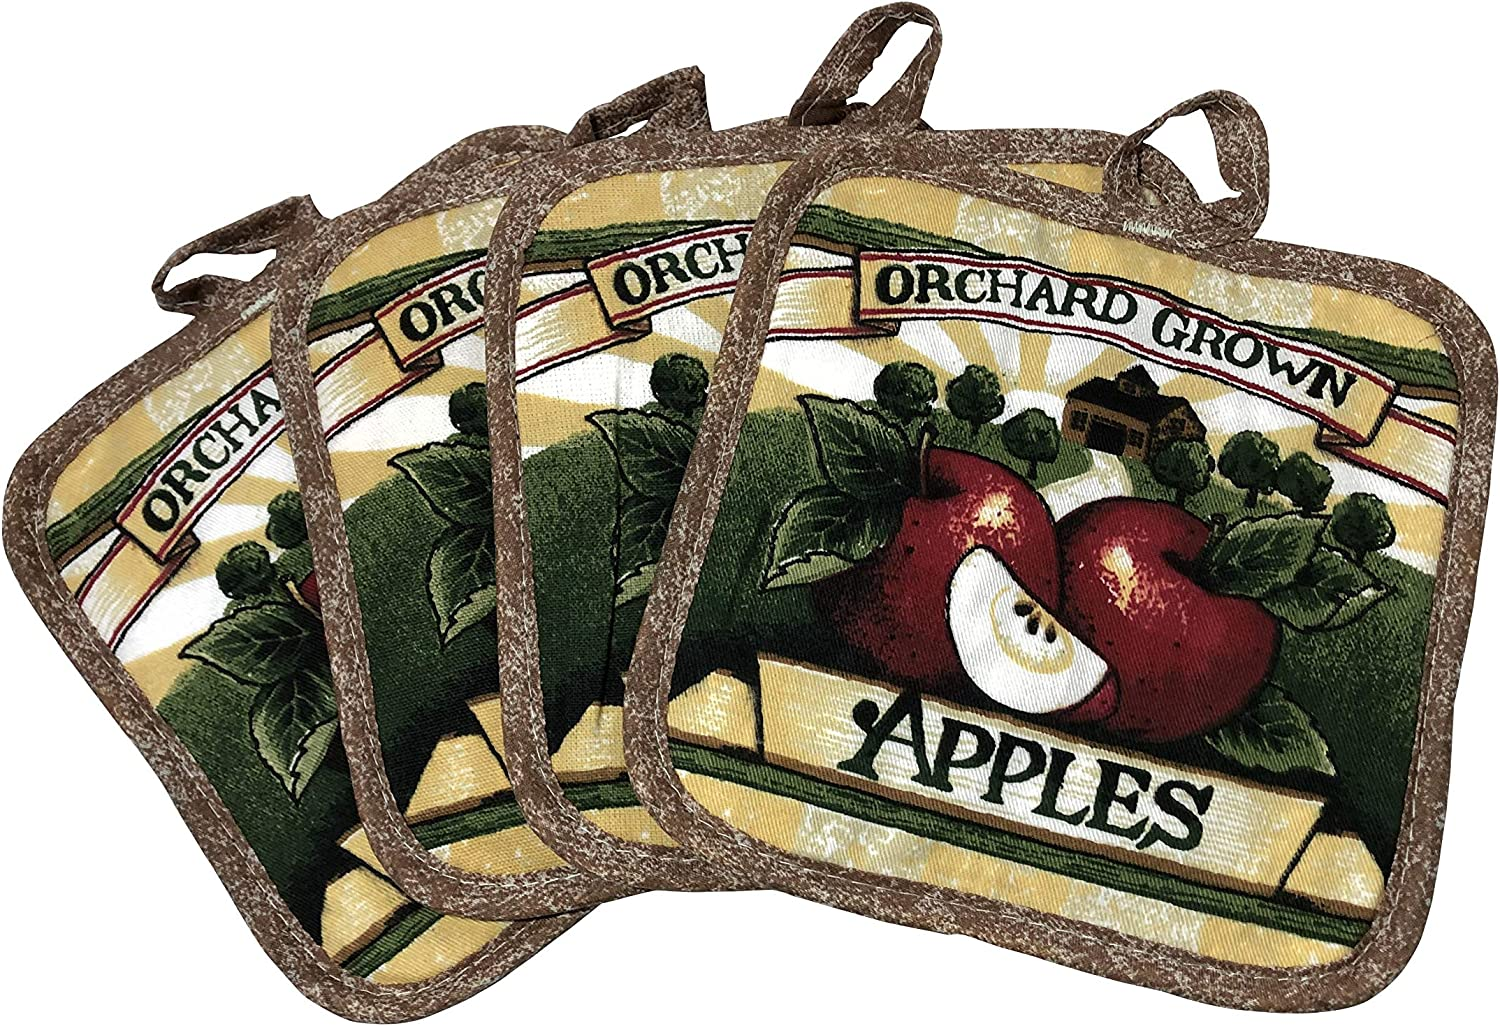 Set of Four Pot Holders for Kitchen Six Different Designs (Orchard Grown Apples)